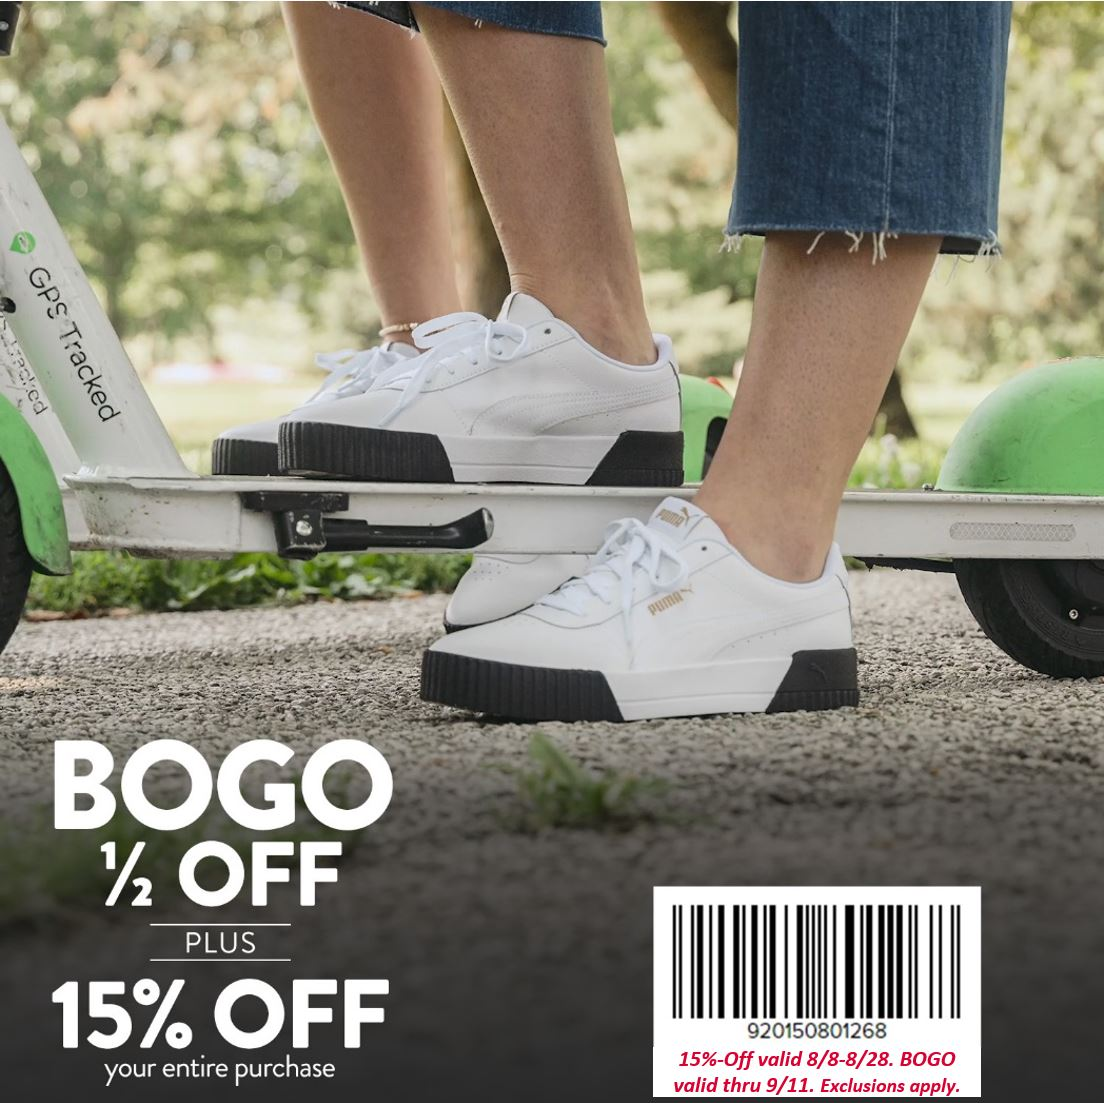 Image: white puma brand sneakers shown on legs with person standing on white scooter. Copy: BOGO 1/2 OFF PLUS 15% OFF your entire purchase. Barcode: 920150801268. 15%-Off valid 8/8-8/28. BOGO valid thru 9/11. Exclusions apply.